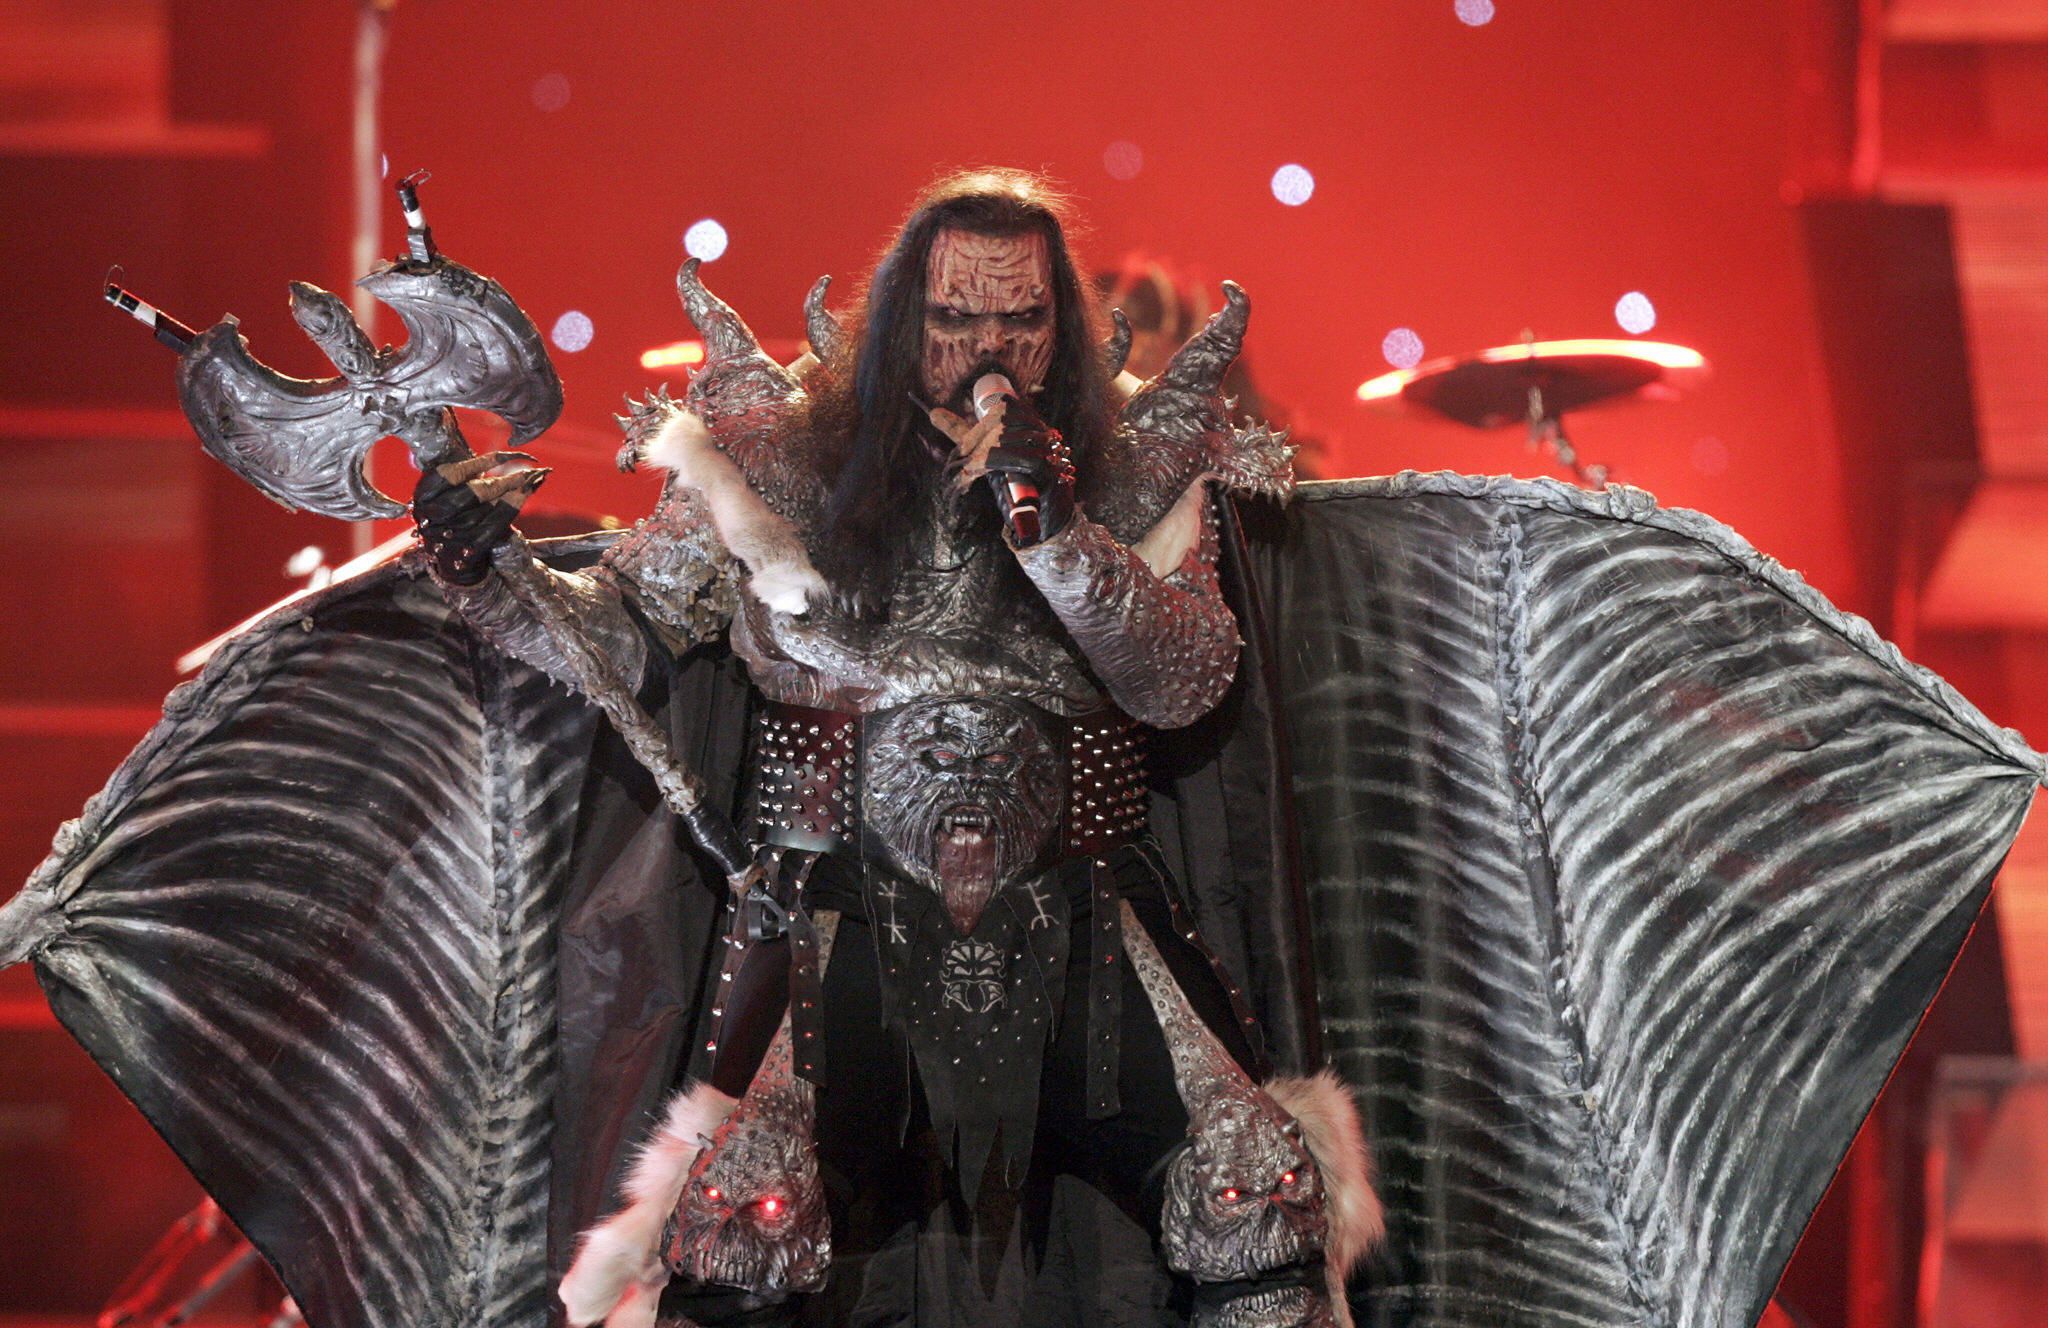 Athens, GREECE: Finland's Lordi performs the song 'Hard Rock Hallelujah' during the 51st Eurovision final song contest at the Athens Olympic Indoor Hall, 20 May 2006. The 51st Eurovision song contest, the continent's annual ode to glitz and extravaganza, began in Athens on Saturday night with 24 countries vying for the title that carries the right to host next year's event. AFP PHOTO / Aris Messinis (Photo credit should read ARIS MESSINIS/AFP/Getty Images)